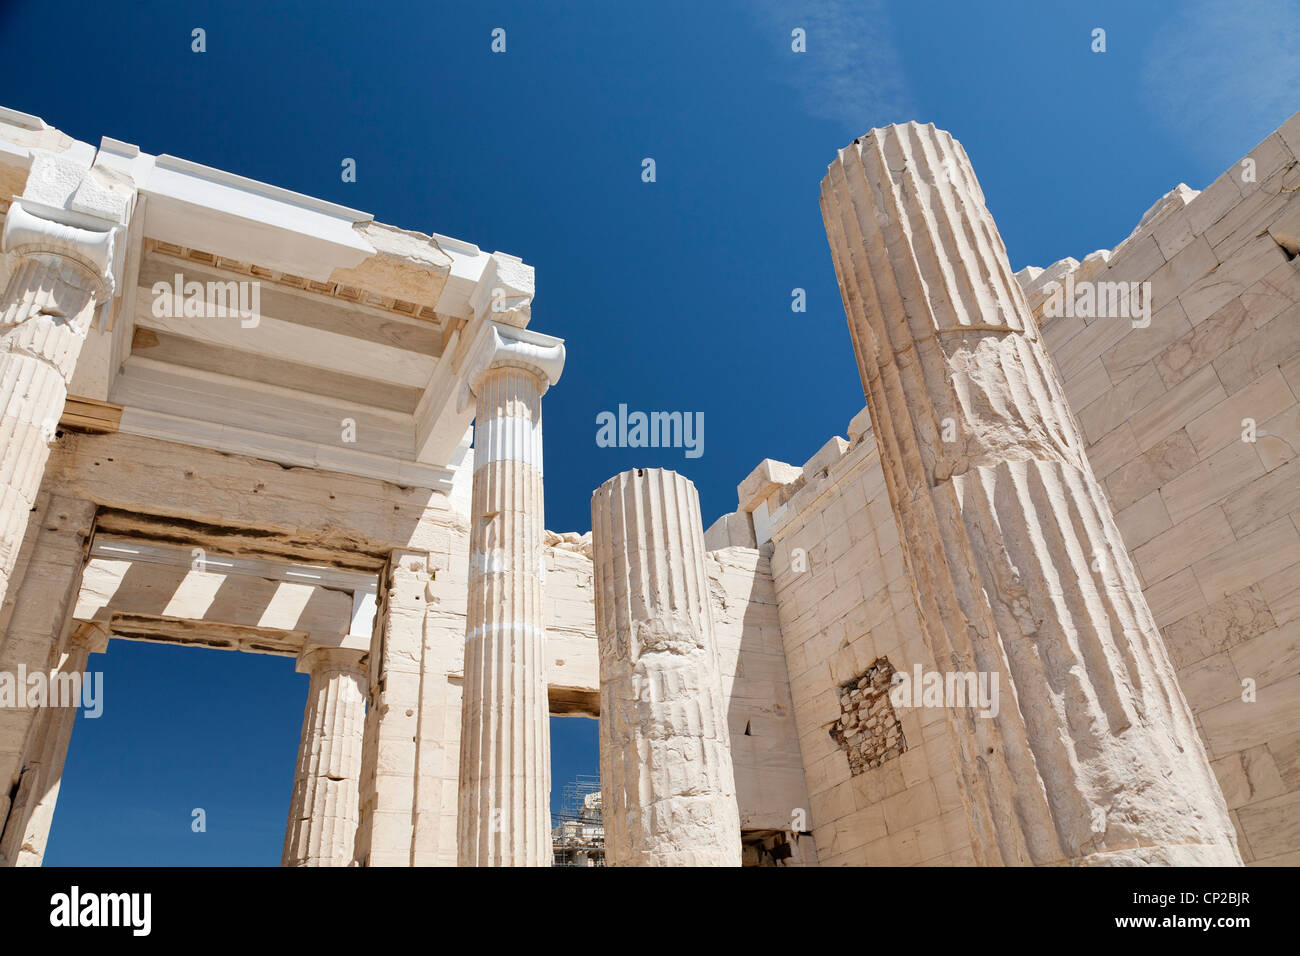 Detail view from Propylaea of the Athenian Acropolis. Athens, Greece. - Stock Image